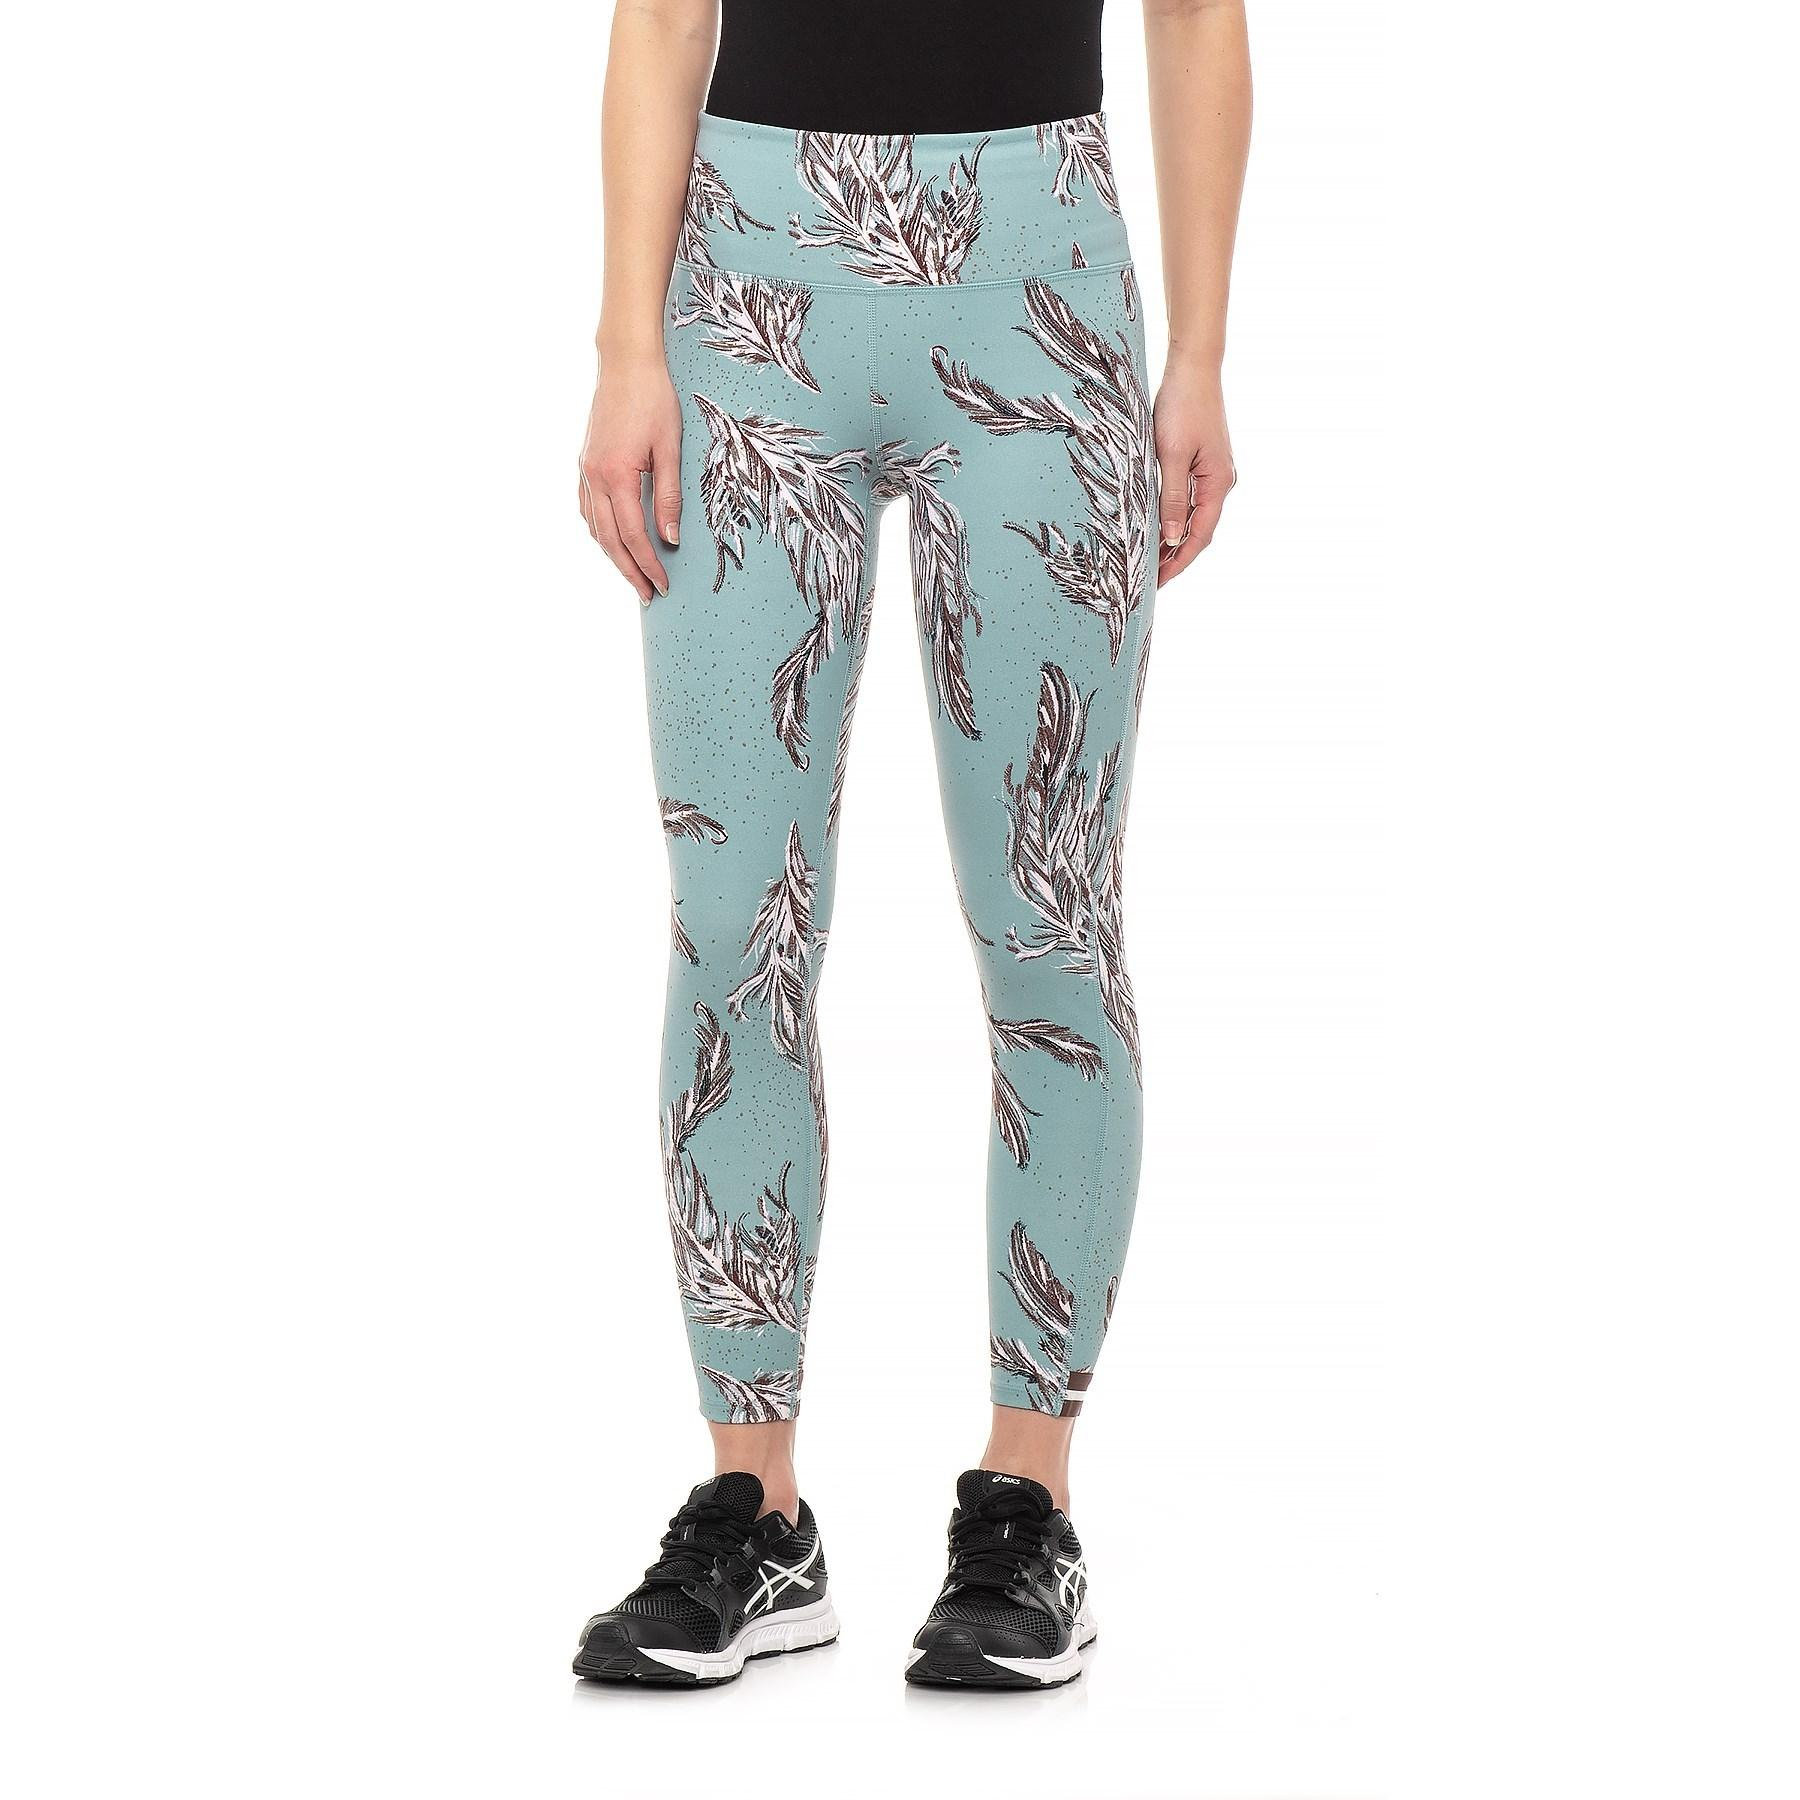 96a98f7d50 Lyst - Free People Serene Printed Yoga Leggings (for Women) in Blue